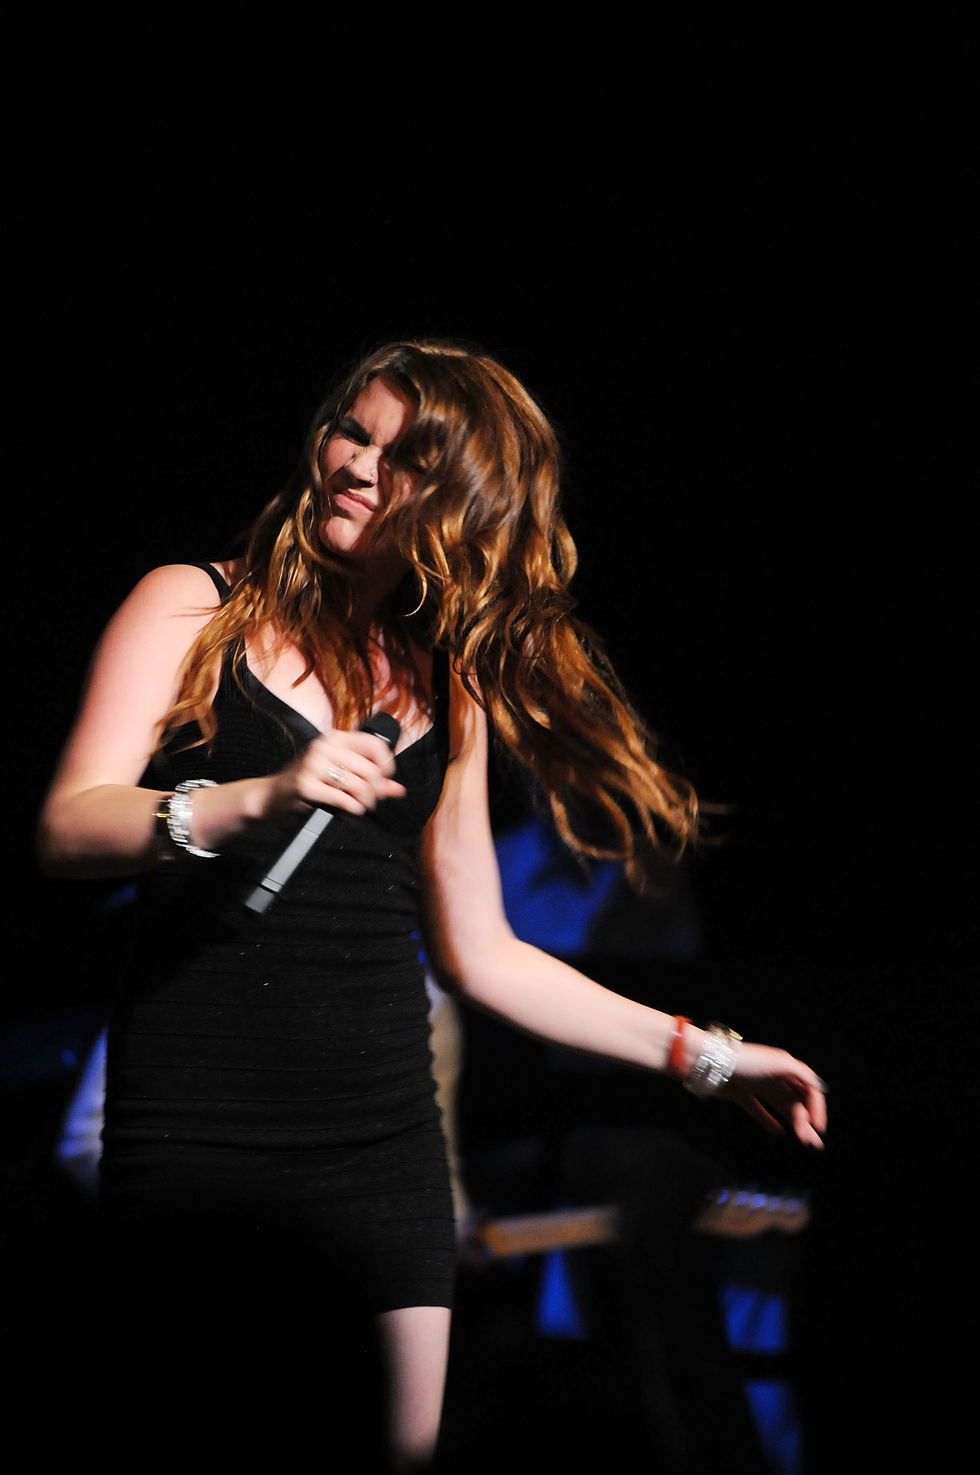 joss-stone-performs-at-hard-rock-live-in-orlando-01